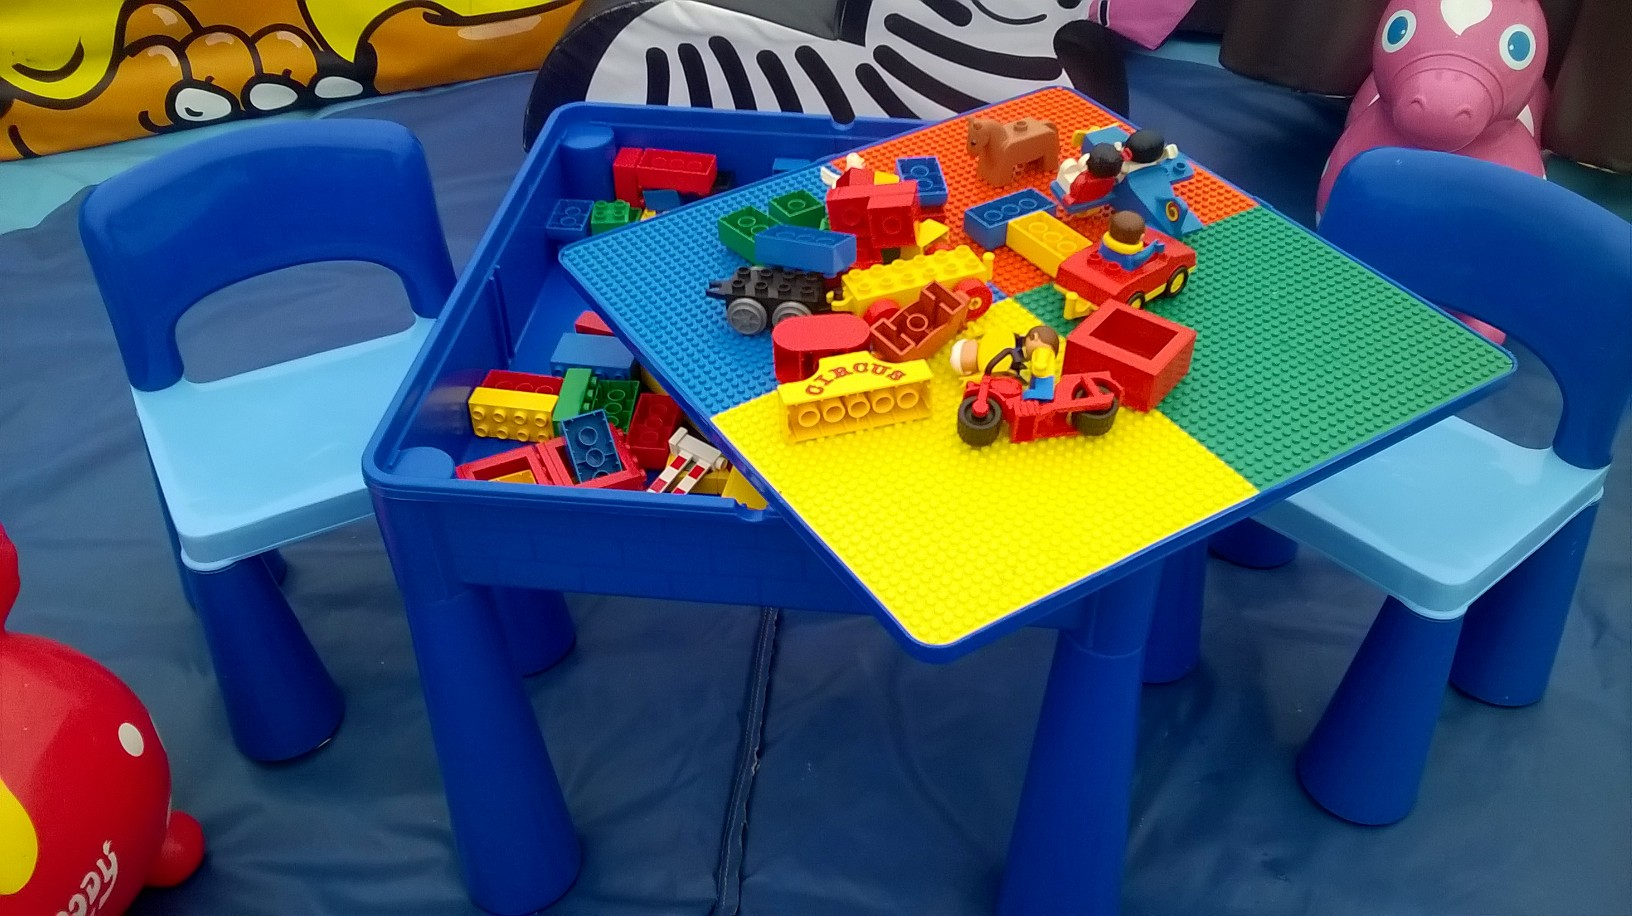 Duplo play table and chairs hire southampton, Hampshire